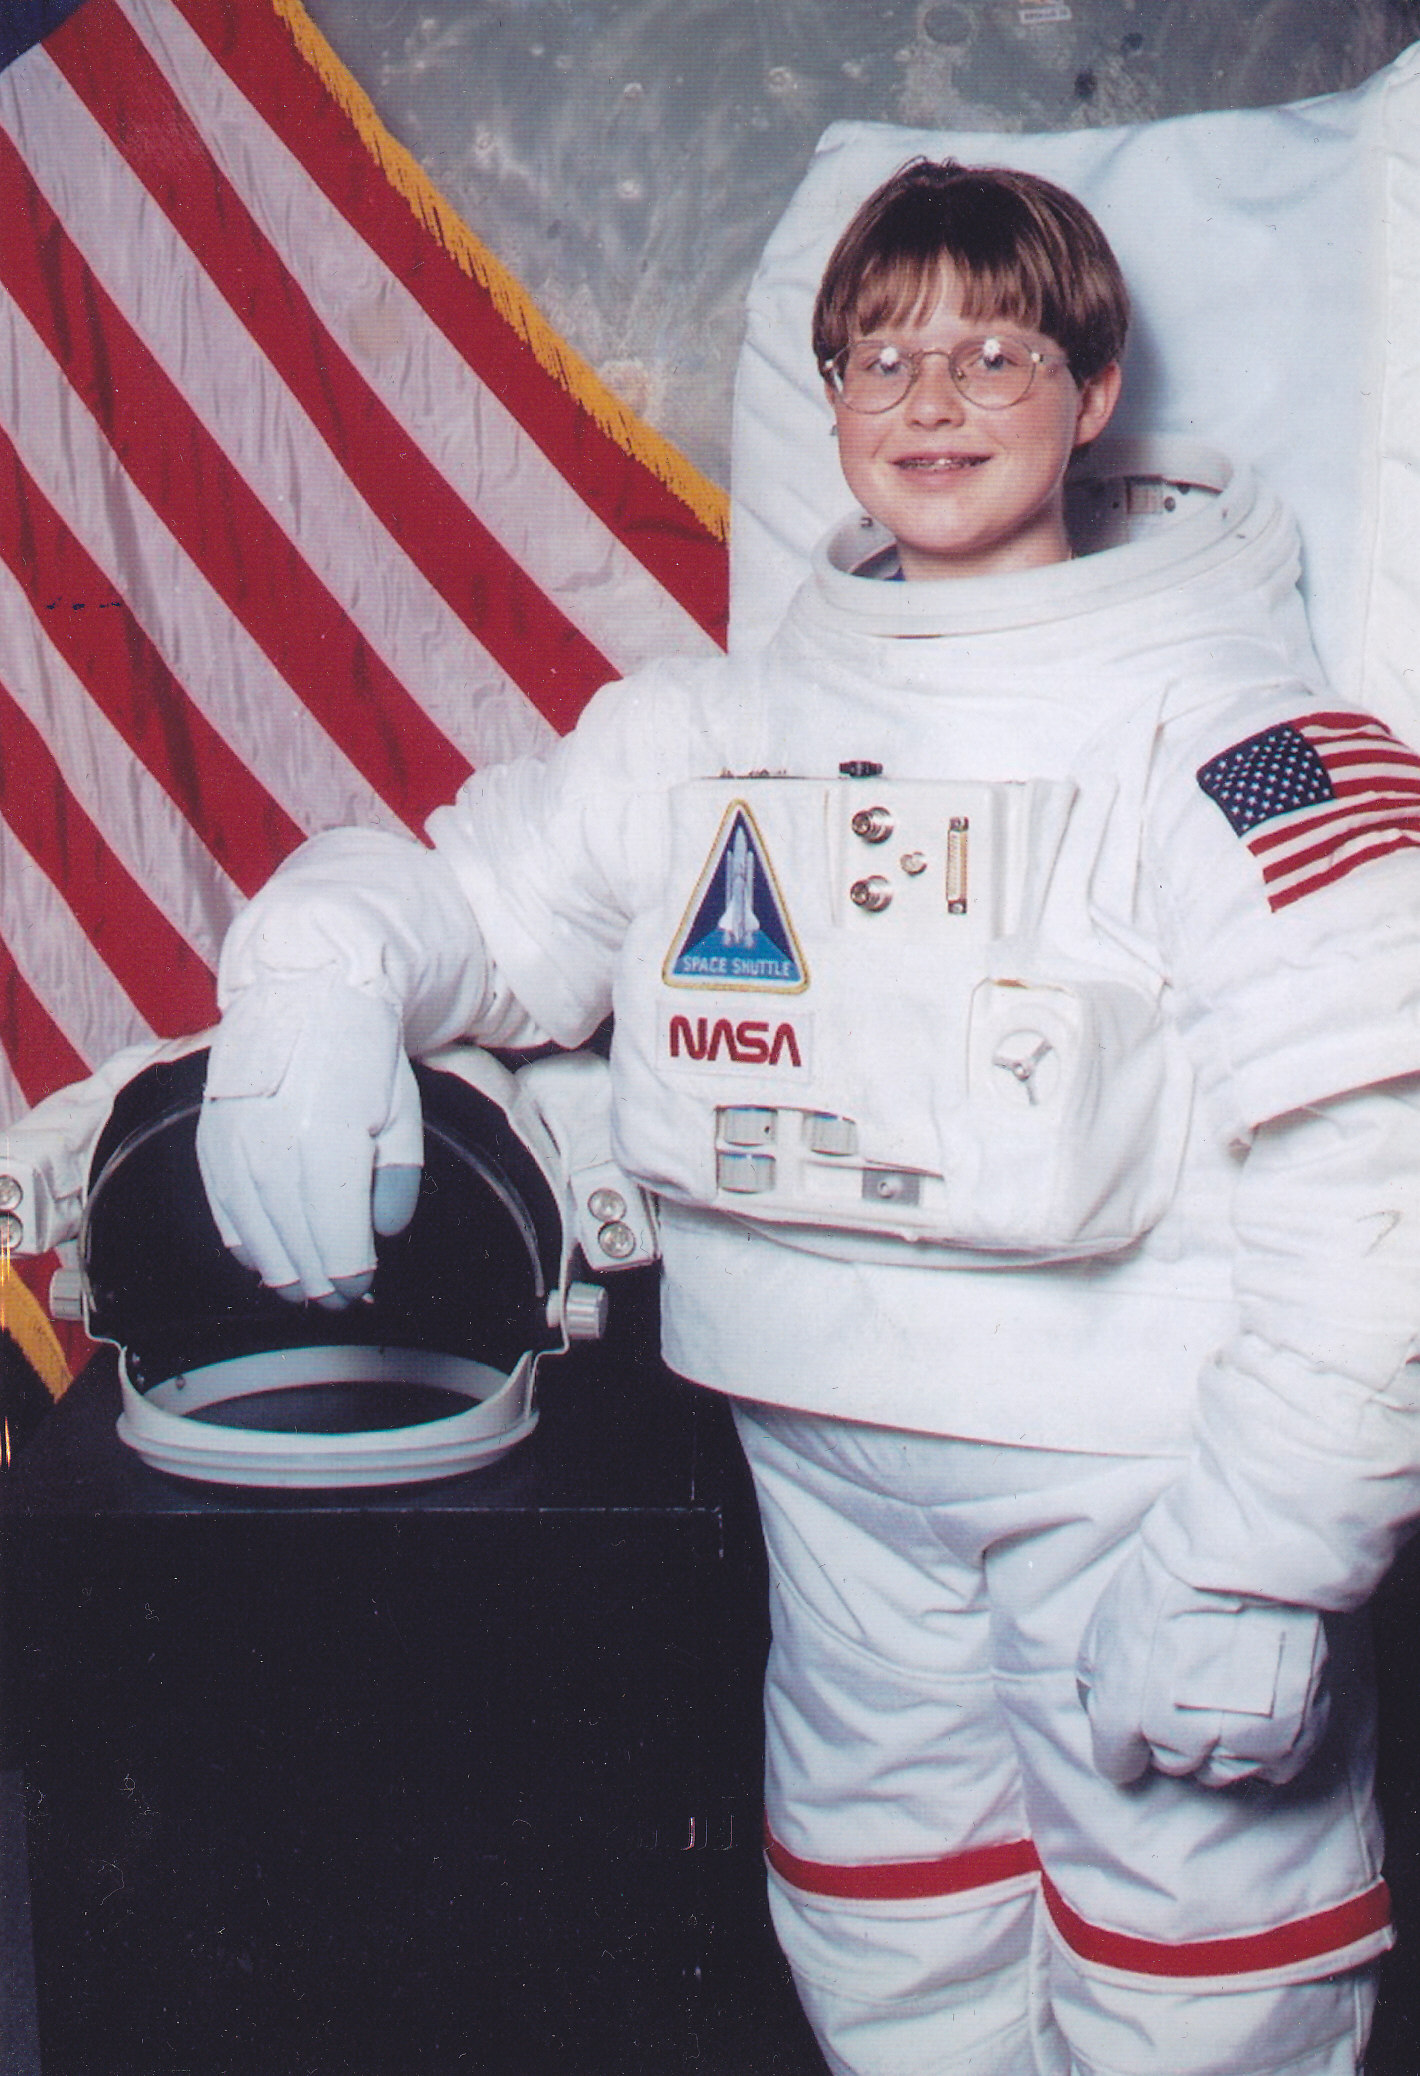 15 years old! Big glasses and Braces...oh boy.... Level 1 of the FATP